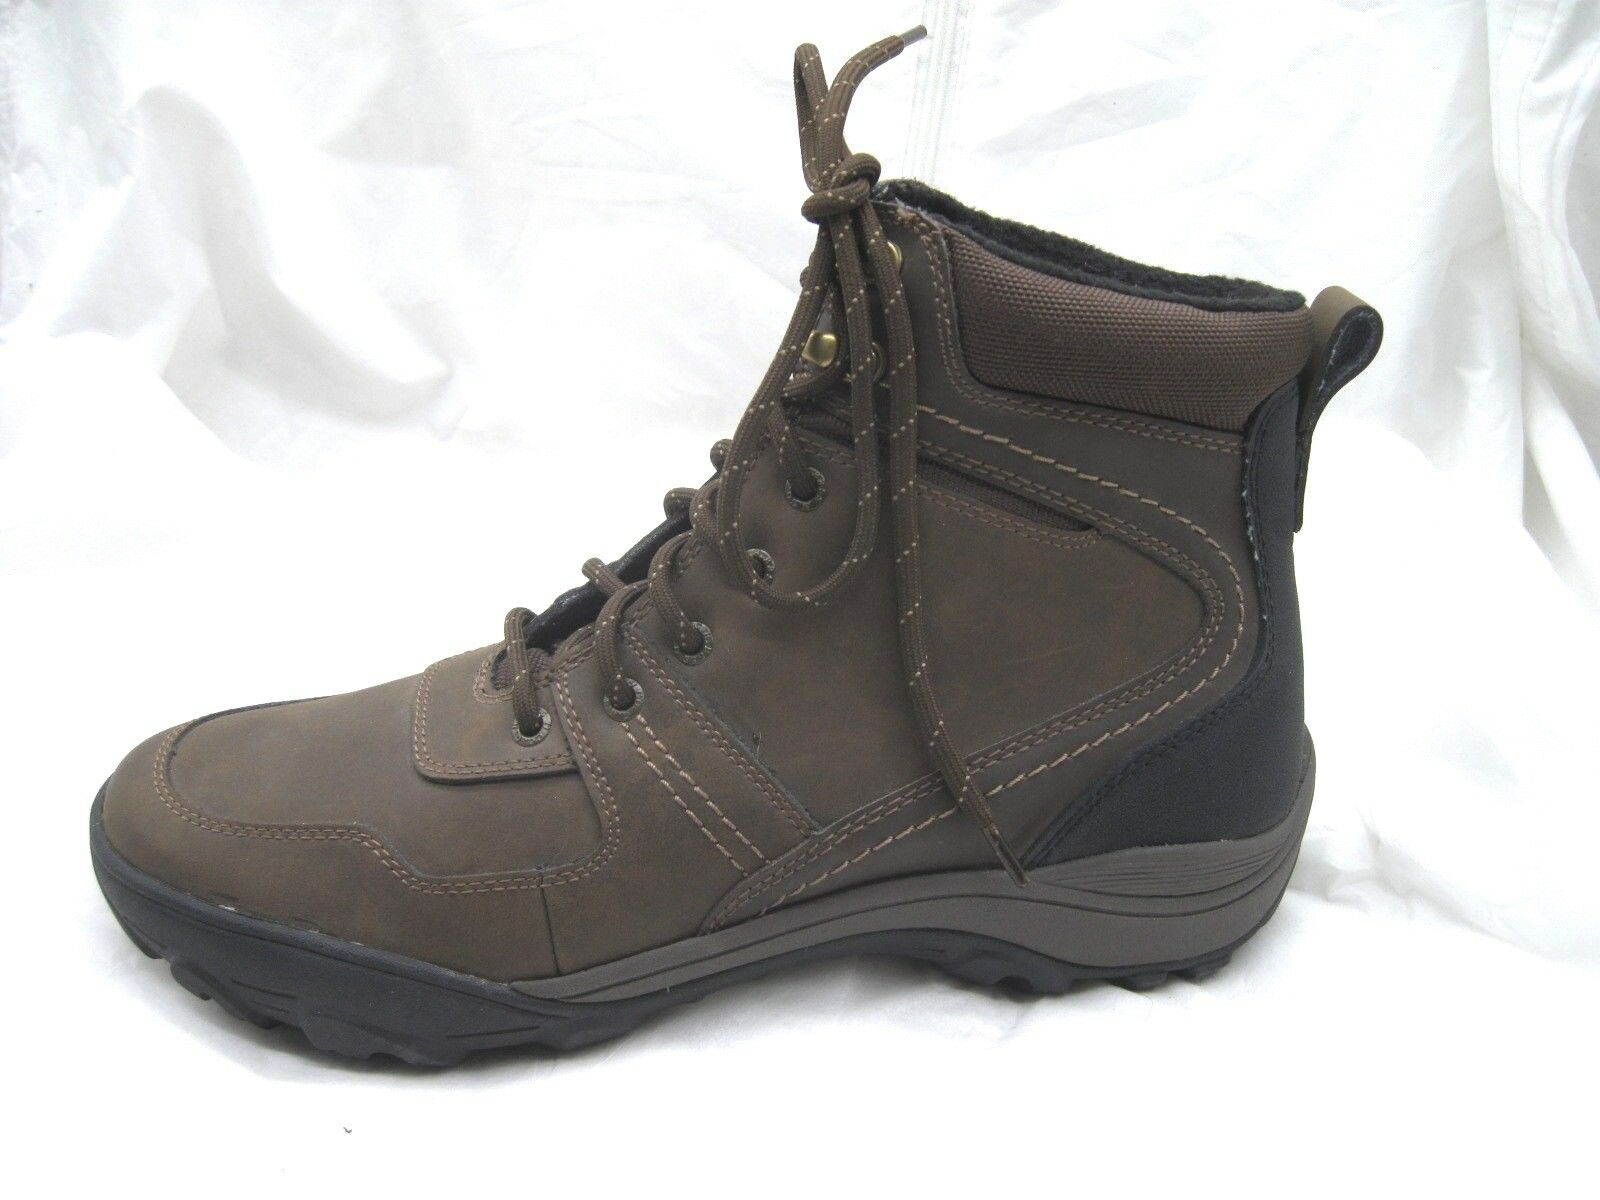 Mens Bass Dark Brown Glacier Lace Up Ankle Hiking boots shoes sz 10.5 101 2